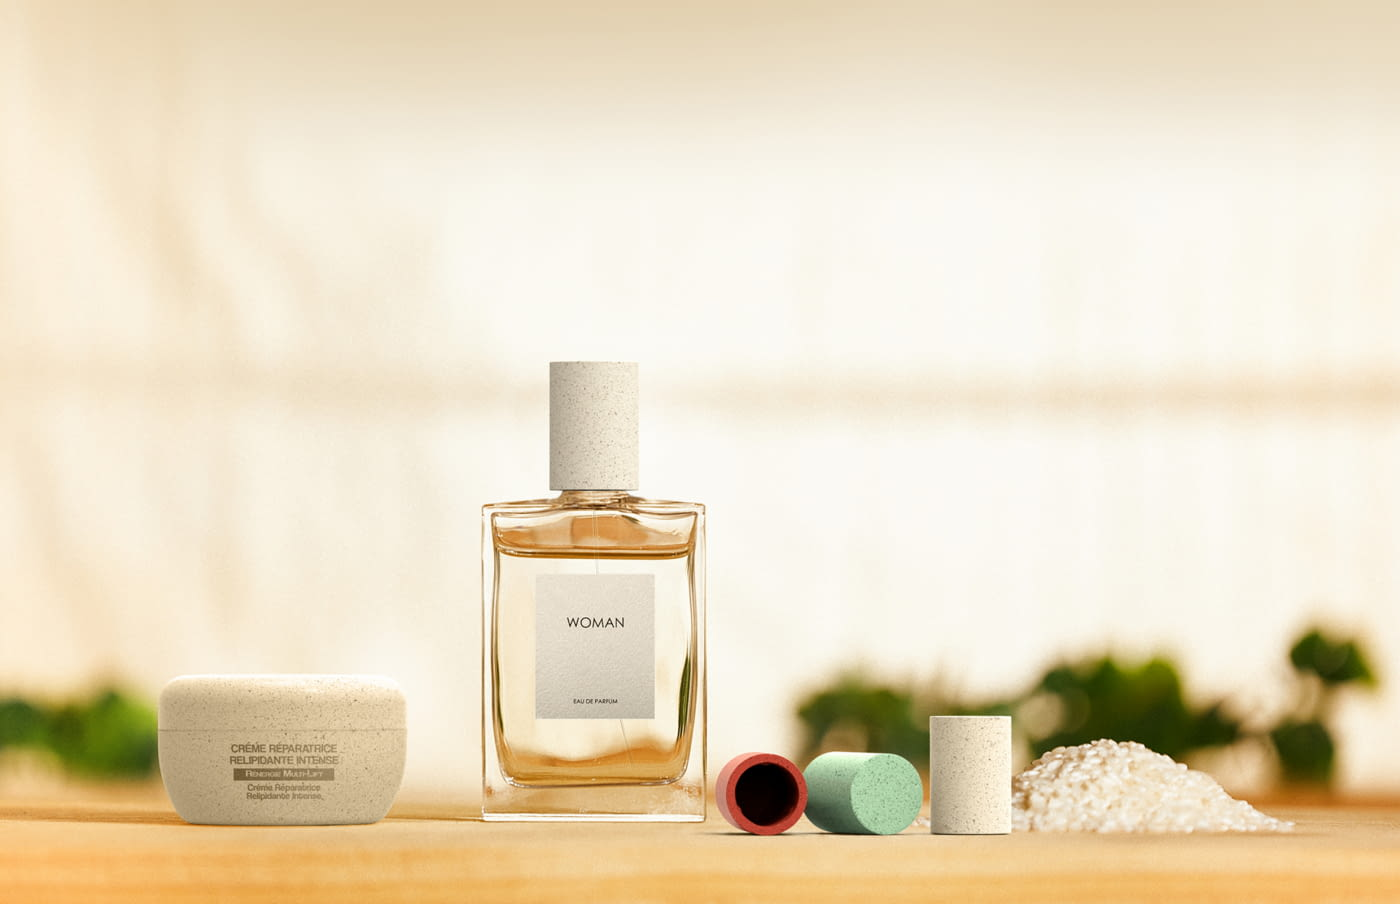 Great fragrances call for a great social responsibility